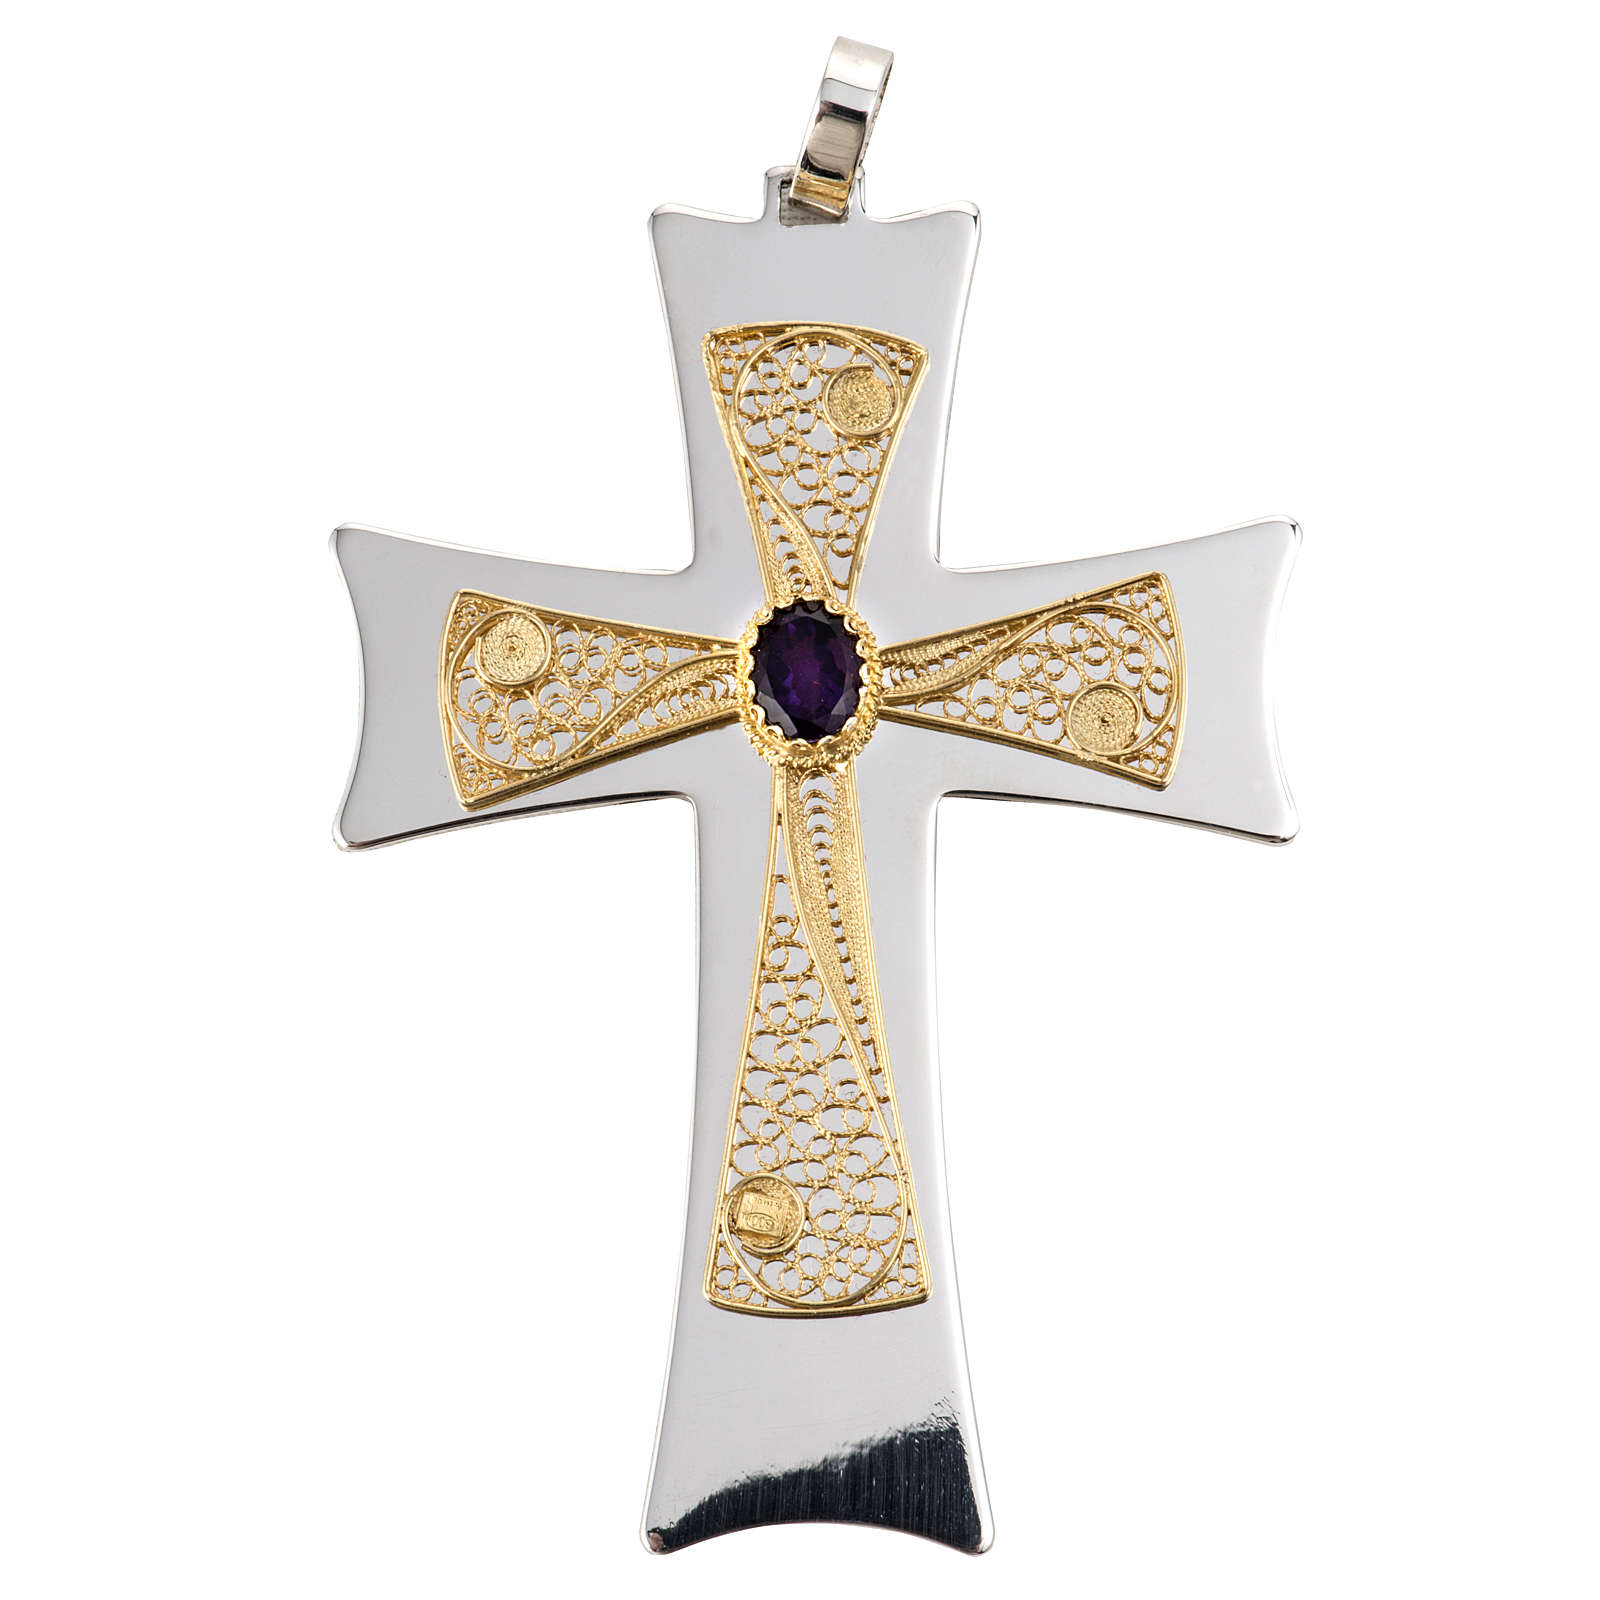 Pectoral cross made of sterling silver, 18Kt gold, rubies 3